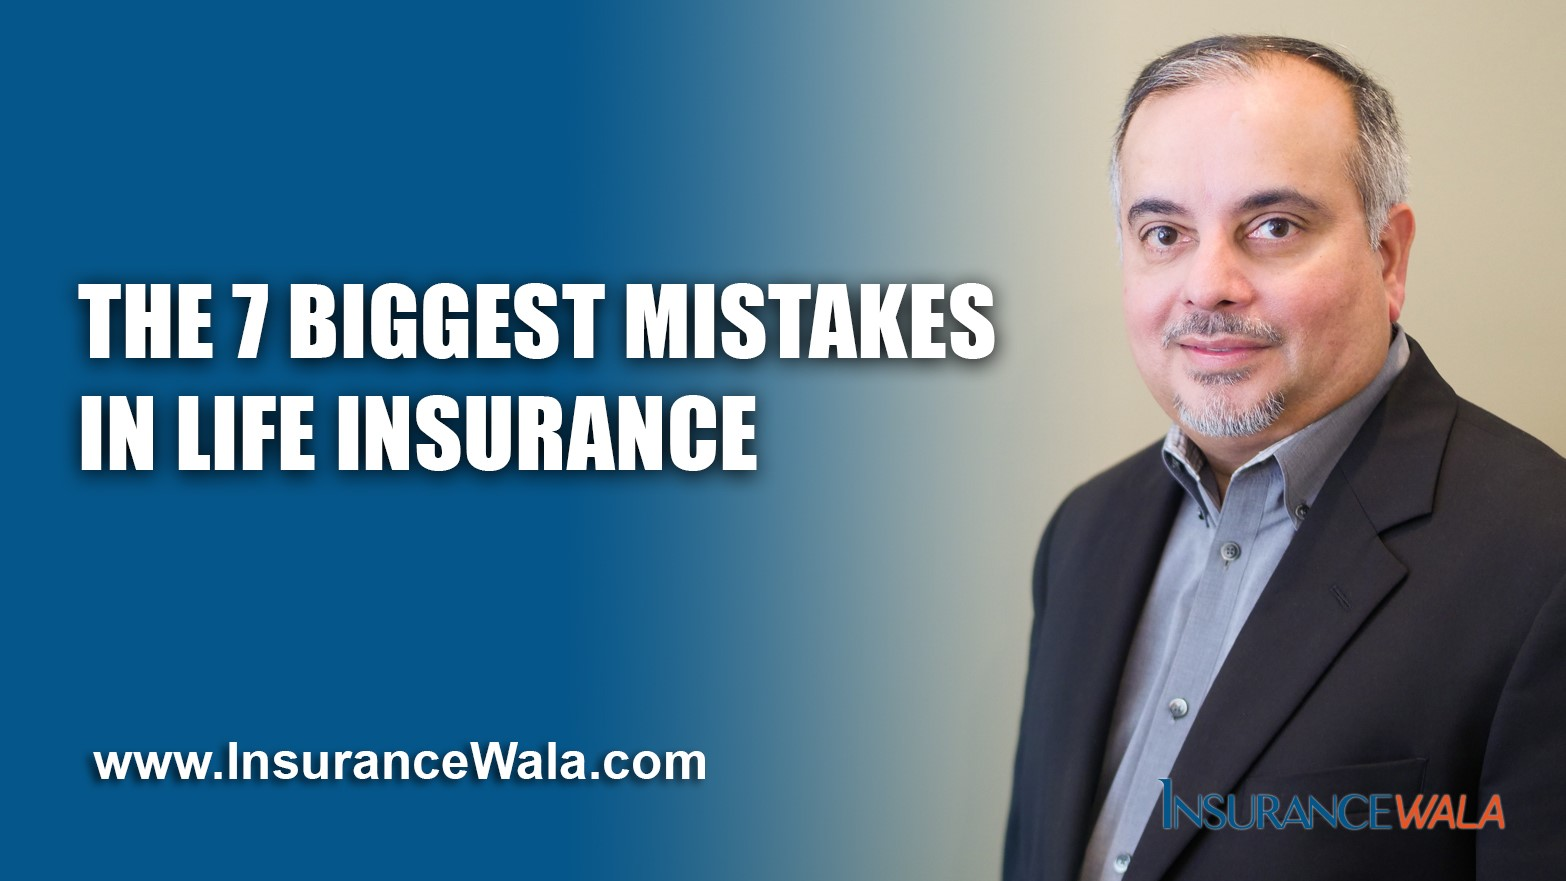 The 7 Biggest Mistakes in Life Insurance and How to Avoid Them